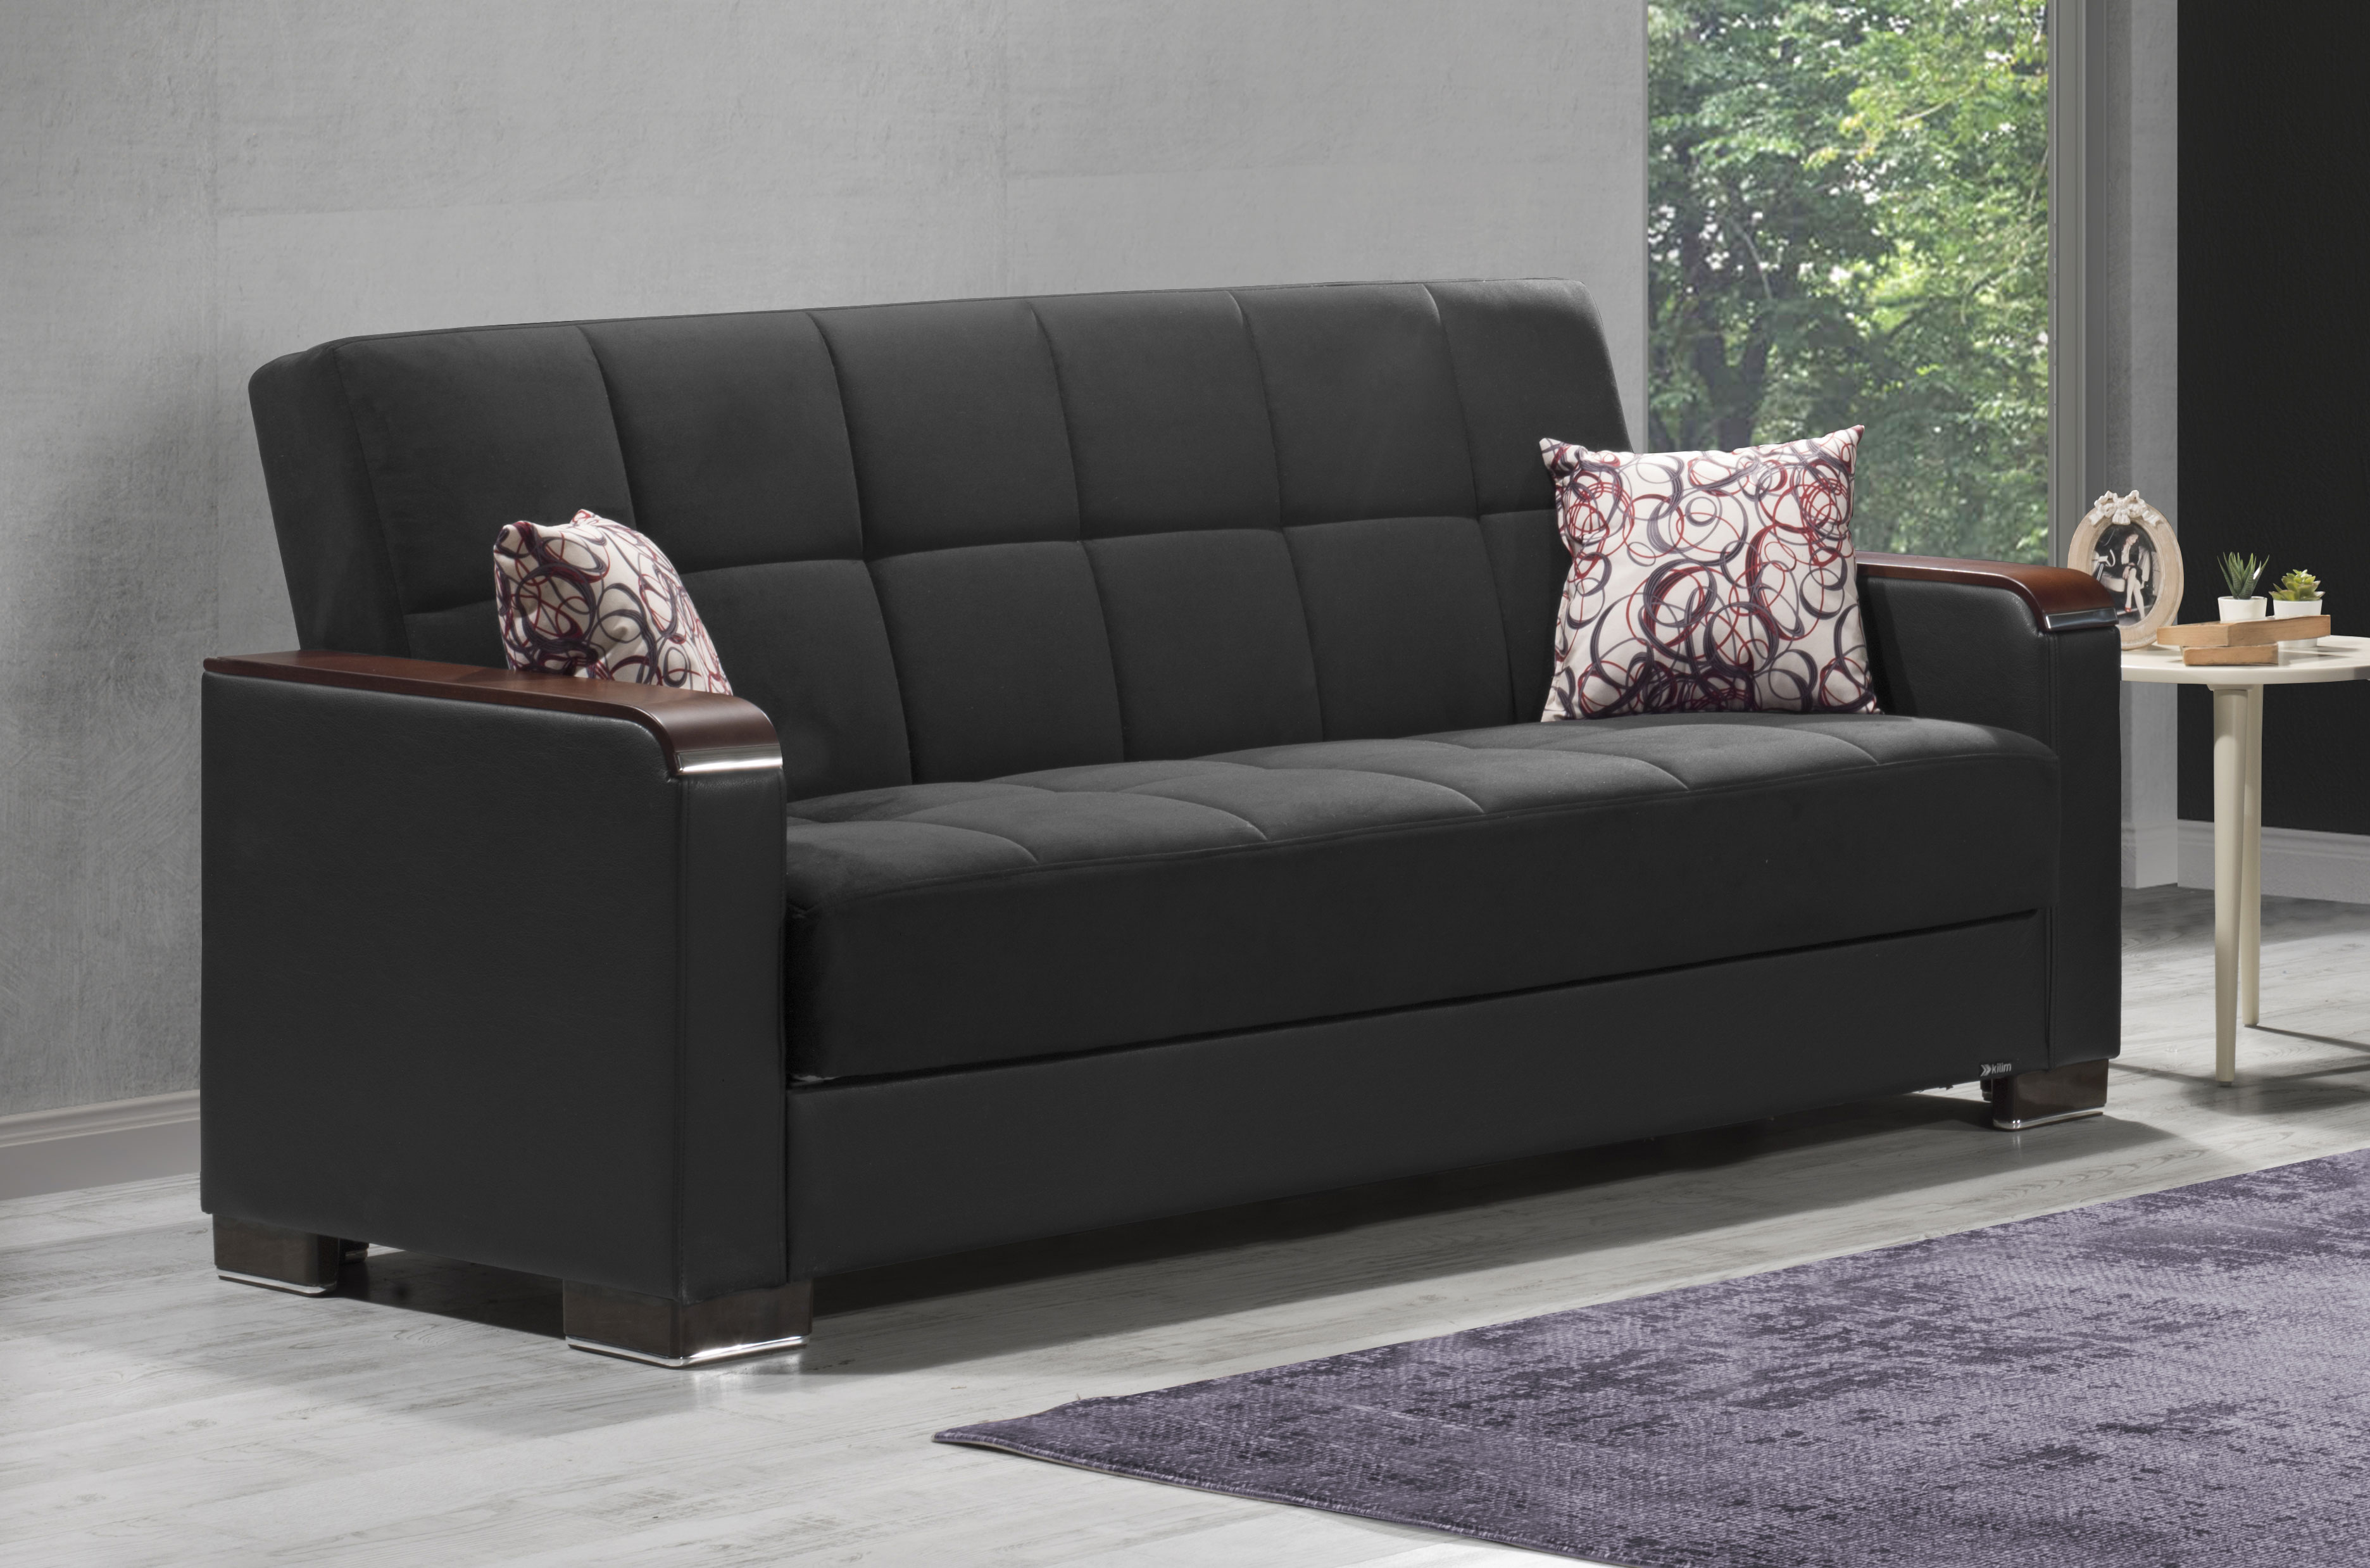 Sofa X Long Armada X Black Sofa Bed By Casamode